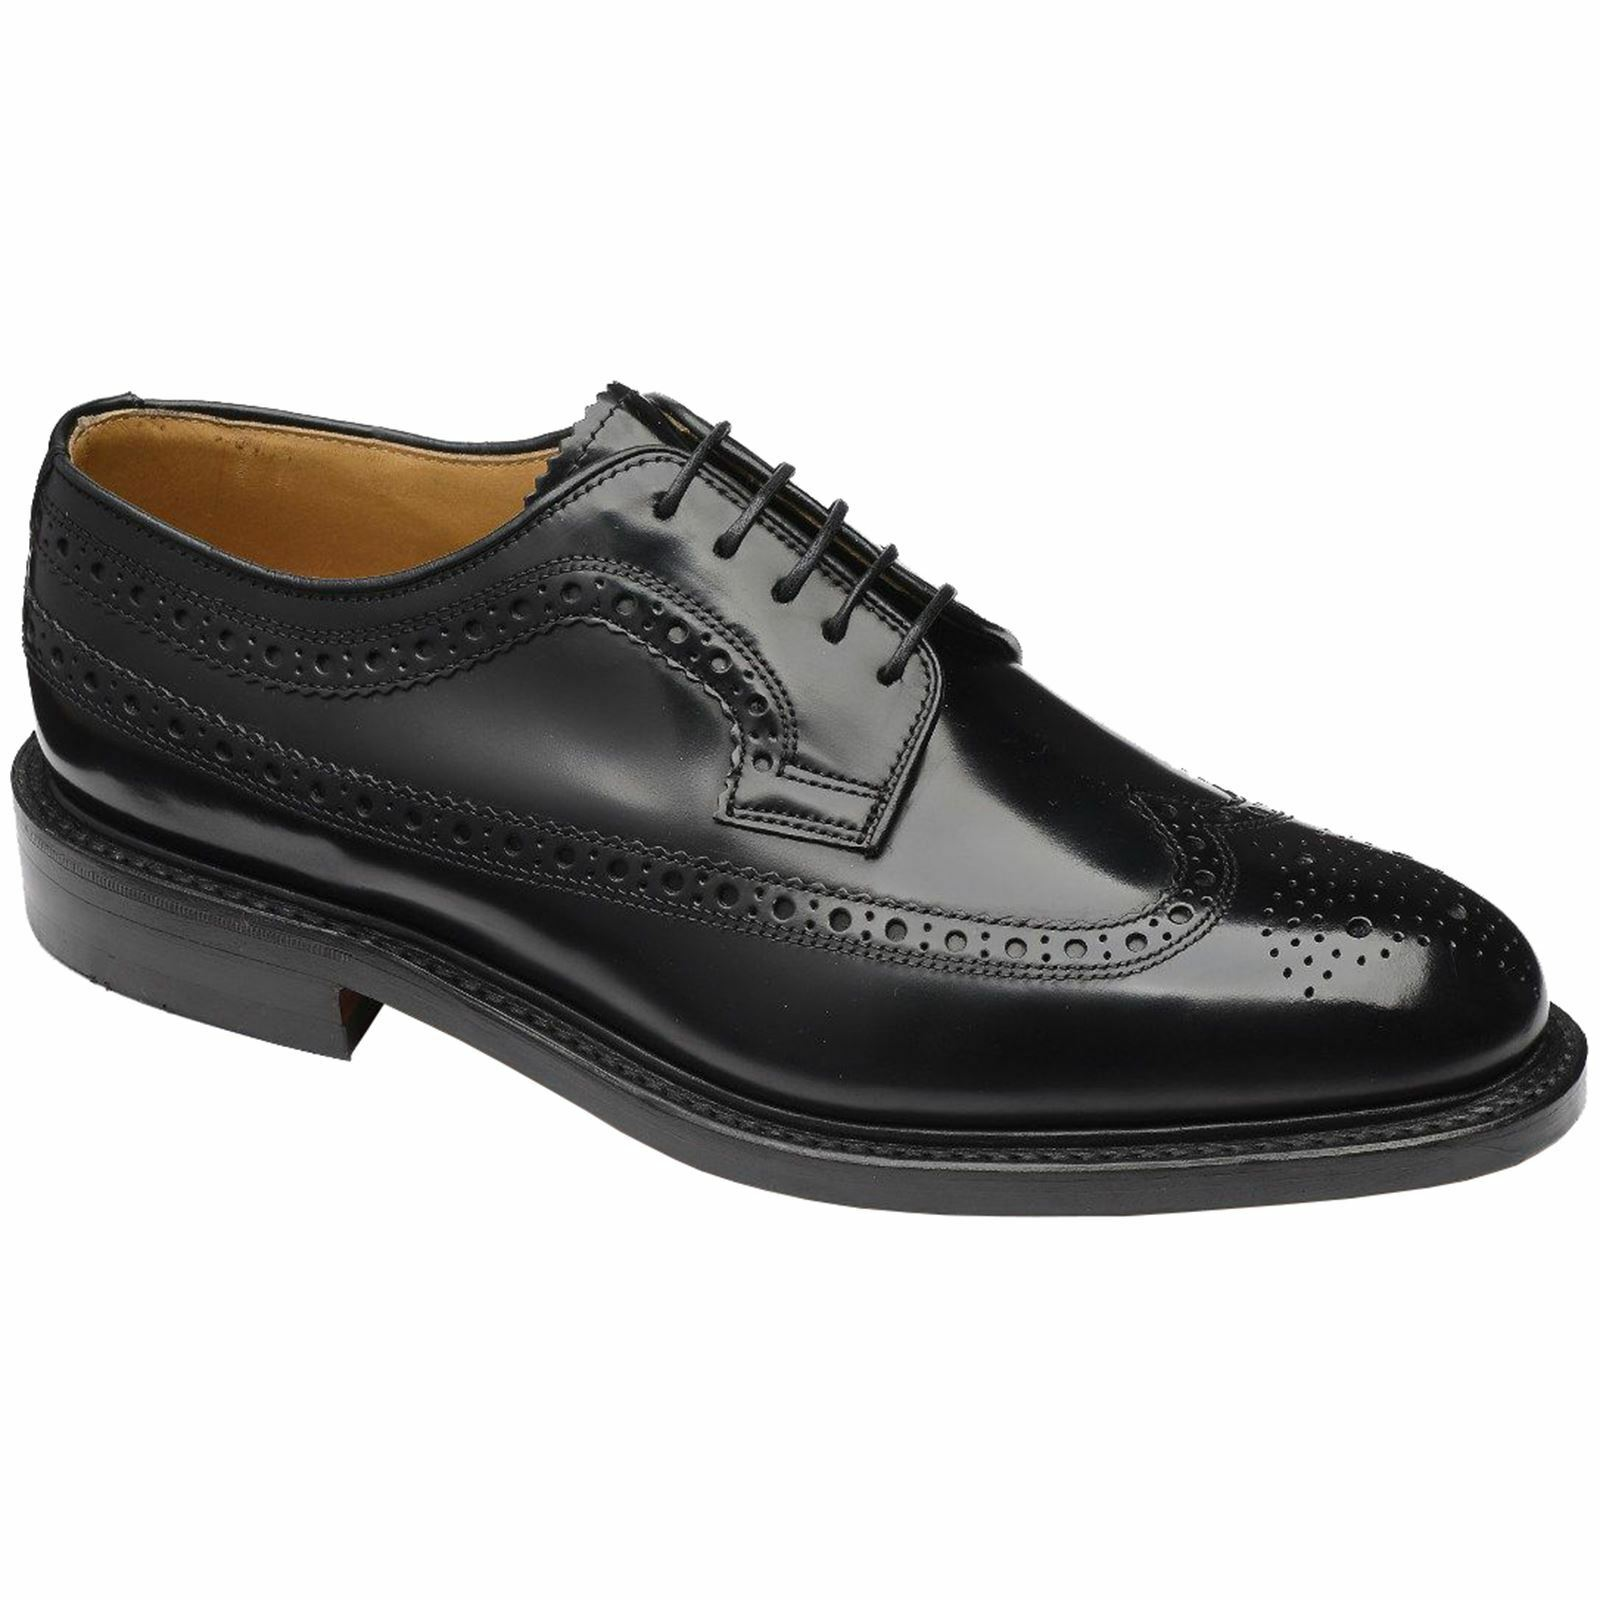 Loake Royal Black Mens Leather Full Brogue Lace-up Formal Shoes